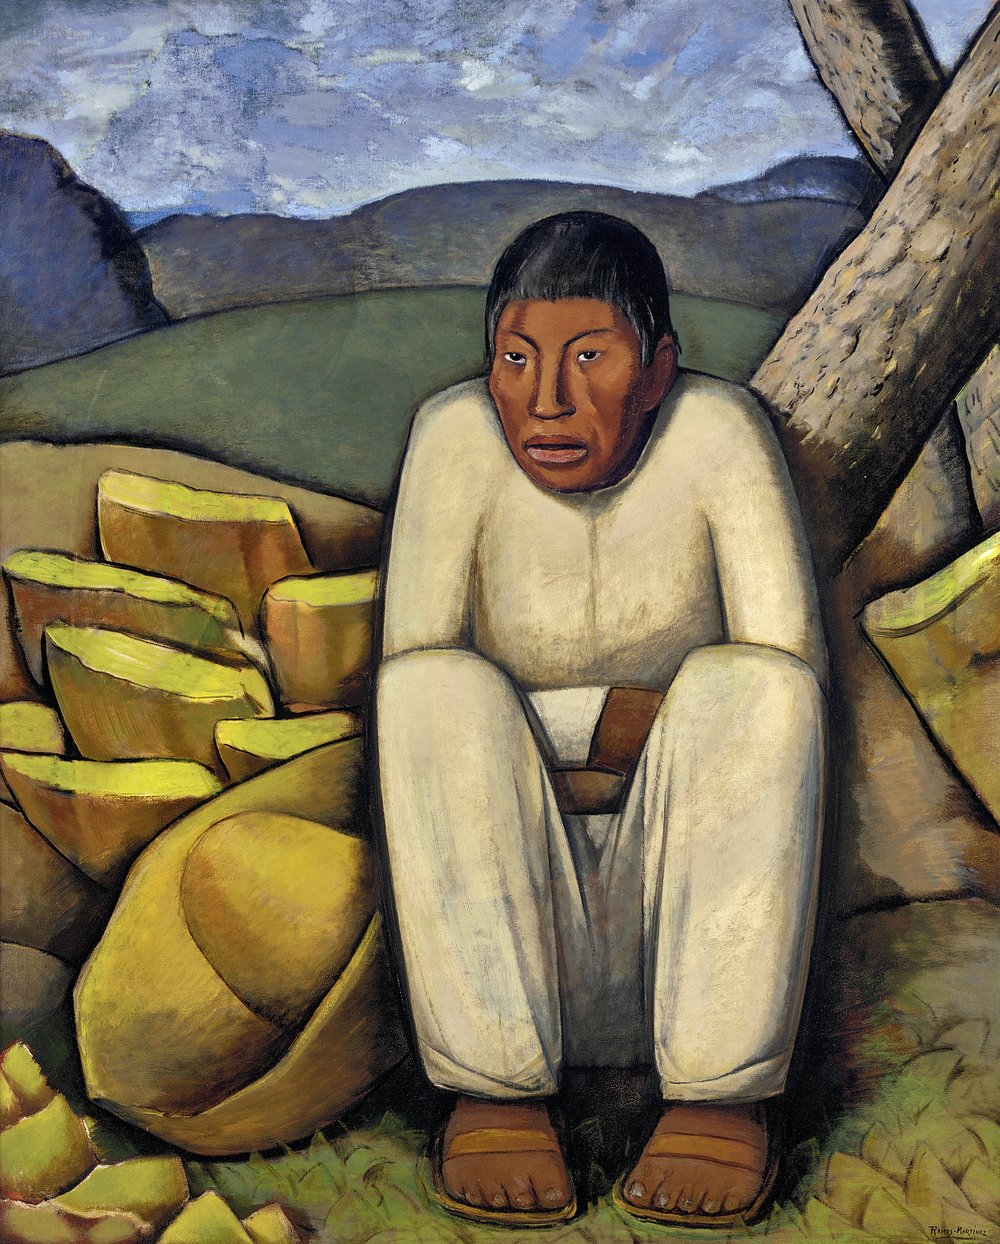 El Indio Solitario / Lonesome Indian  ca. 1933 oil on canvas / óleo sobre tela 44.5 x 36.3 inches; 113 x 92.1 centímetros Private collection